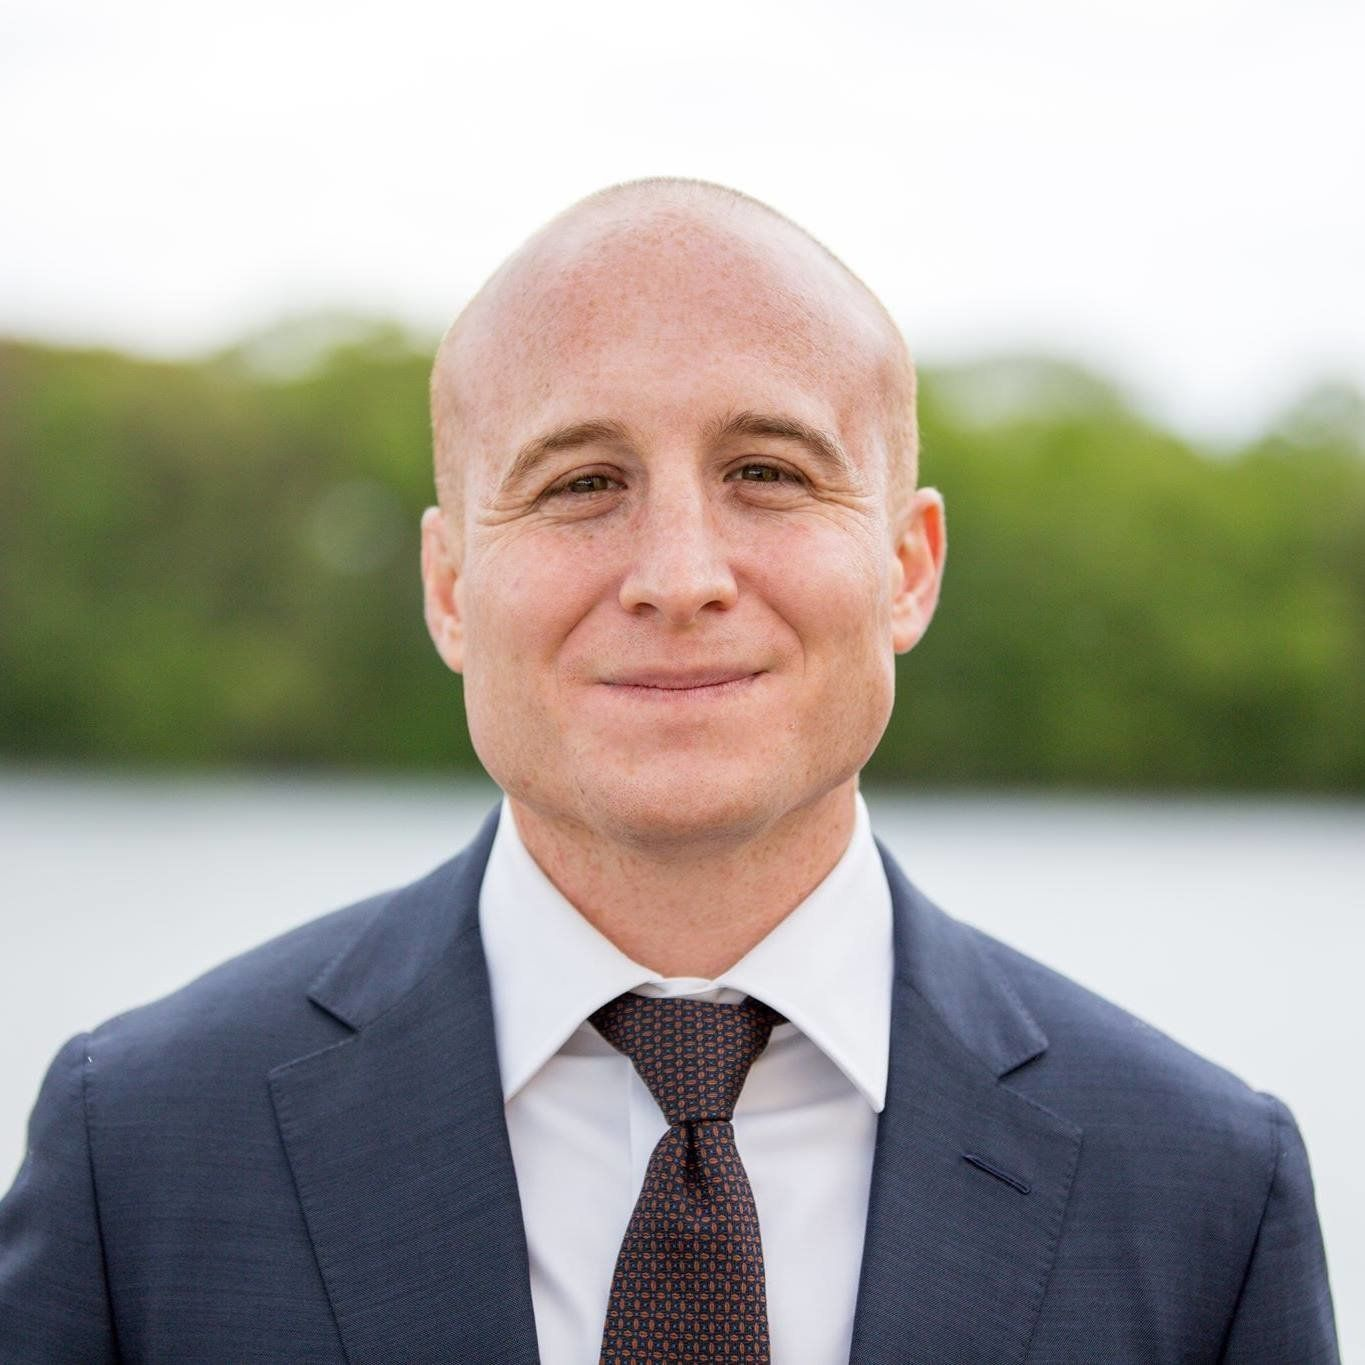 Democrat Max Rose is hoping to flip New Yorks 11th Congressional District